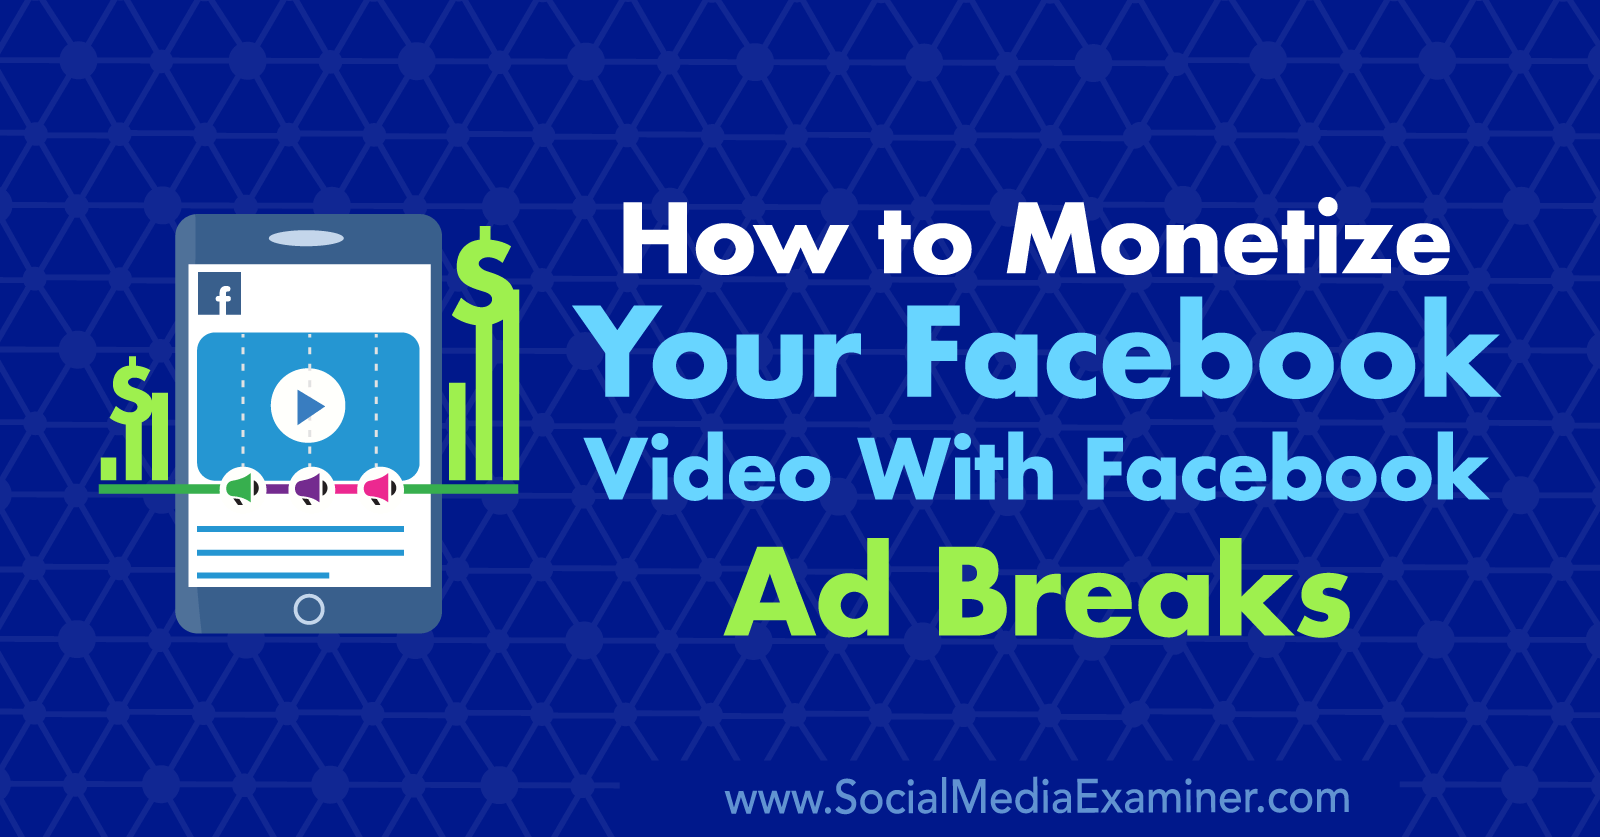 How to Monetize Your Facebook Video With Facebook Ad Breaks : Social Media  Examiner